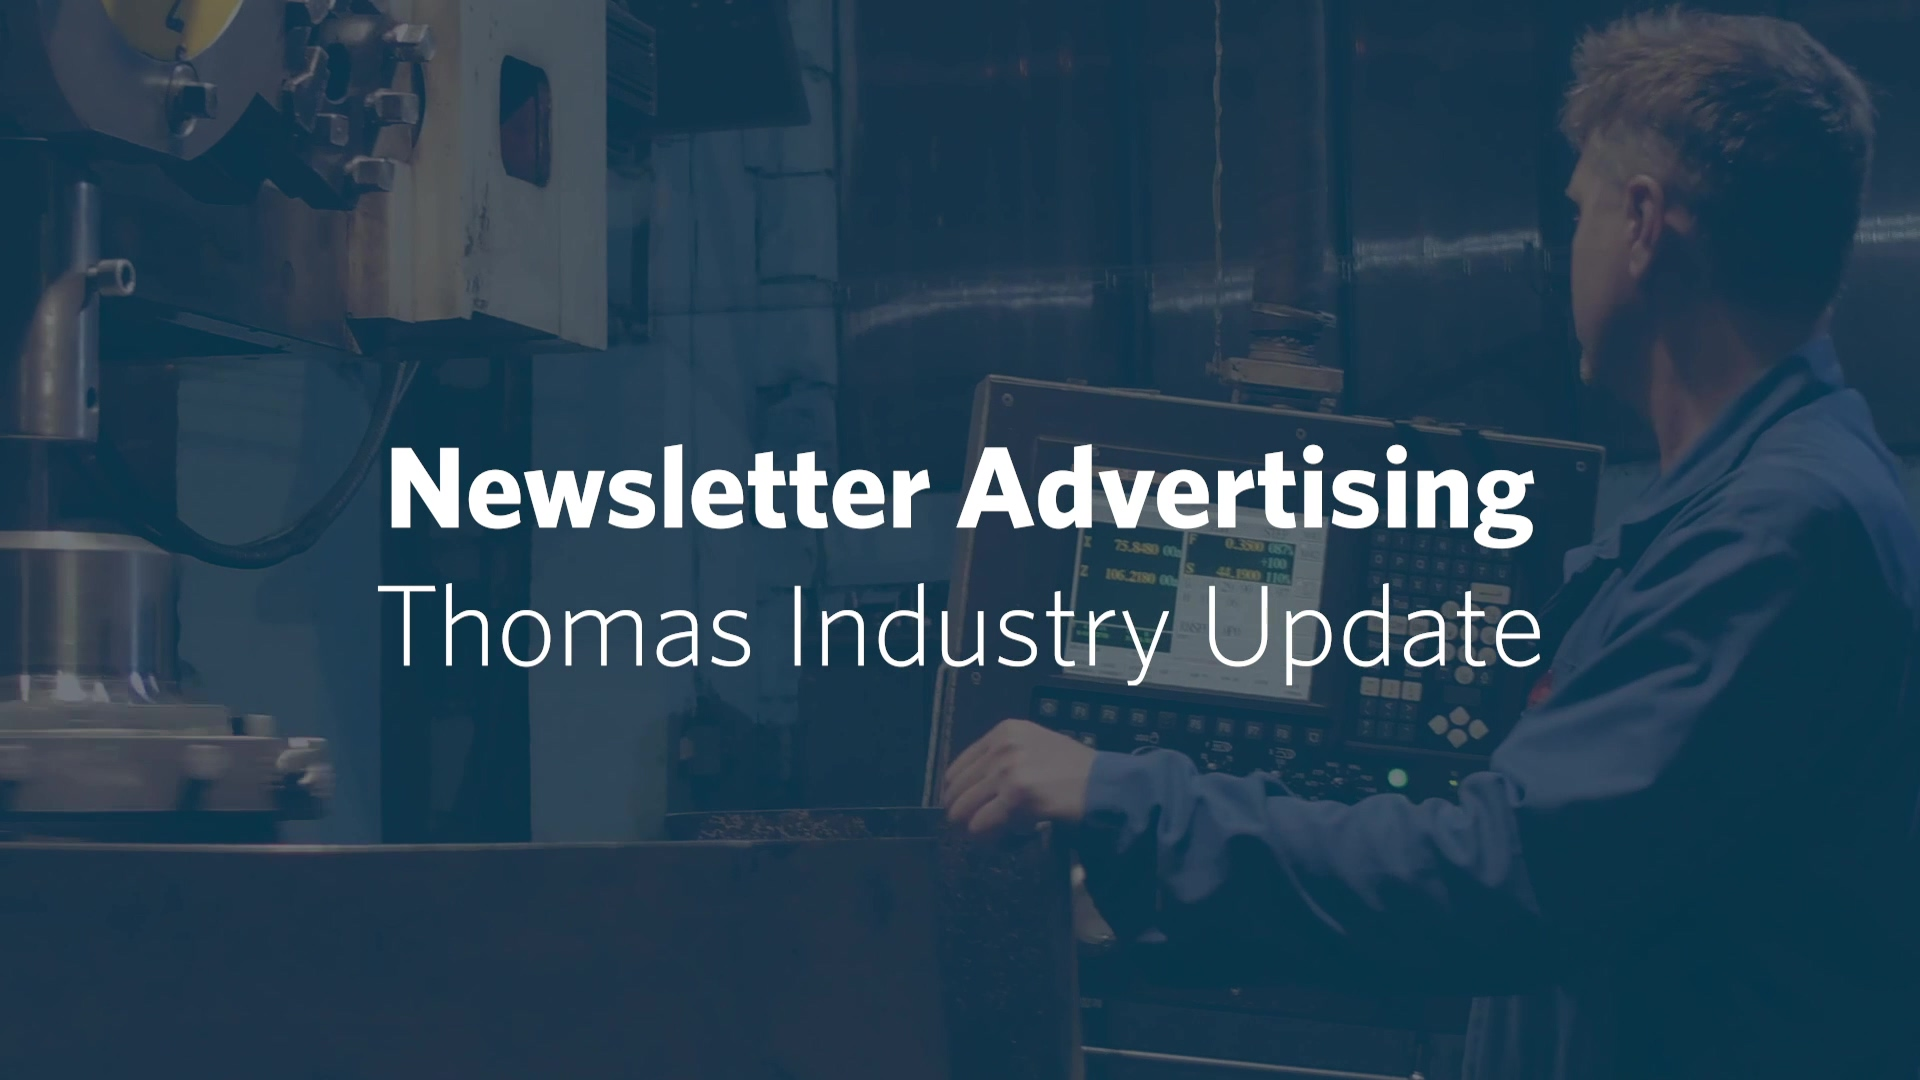 Thomas Industry Update Newsletter Advertising New